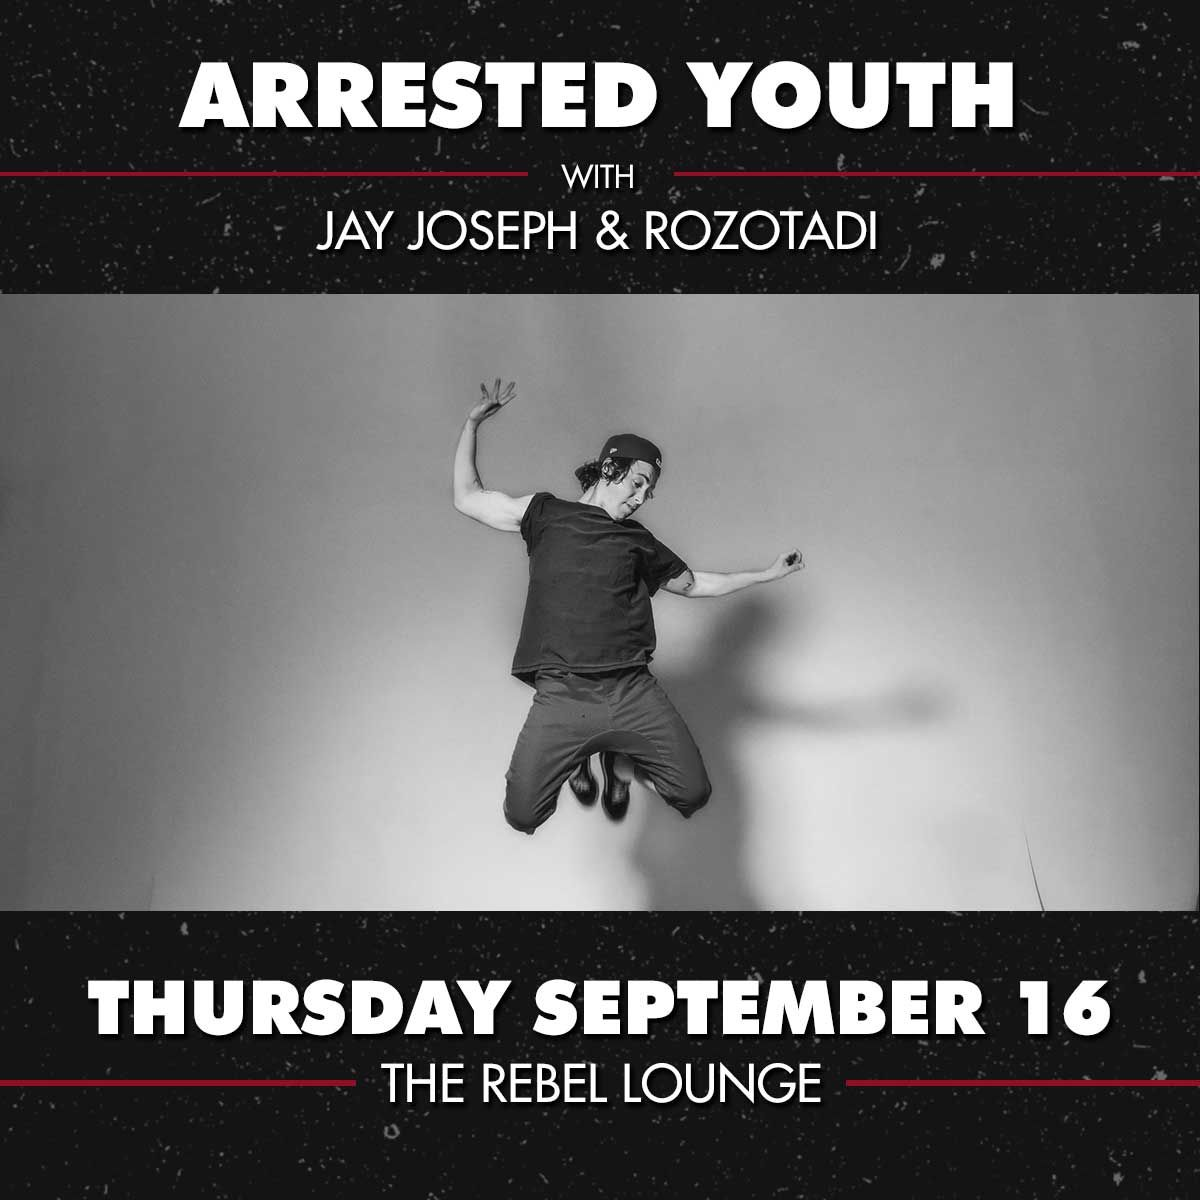 ARRESTED YOUTH: